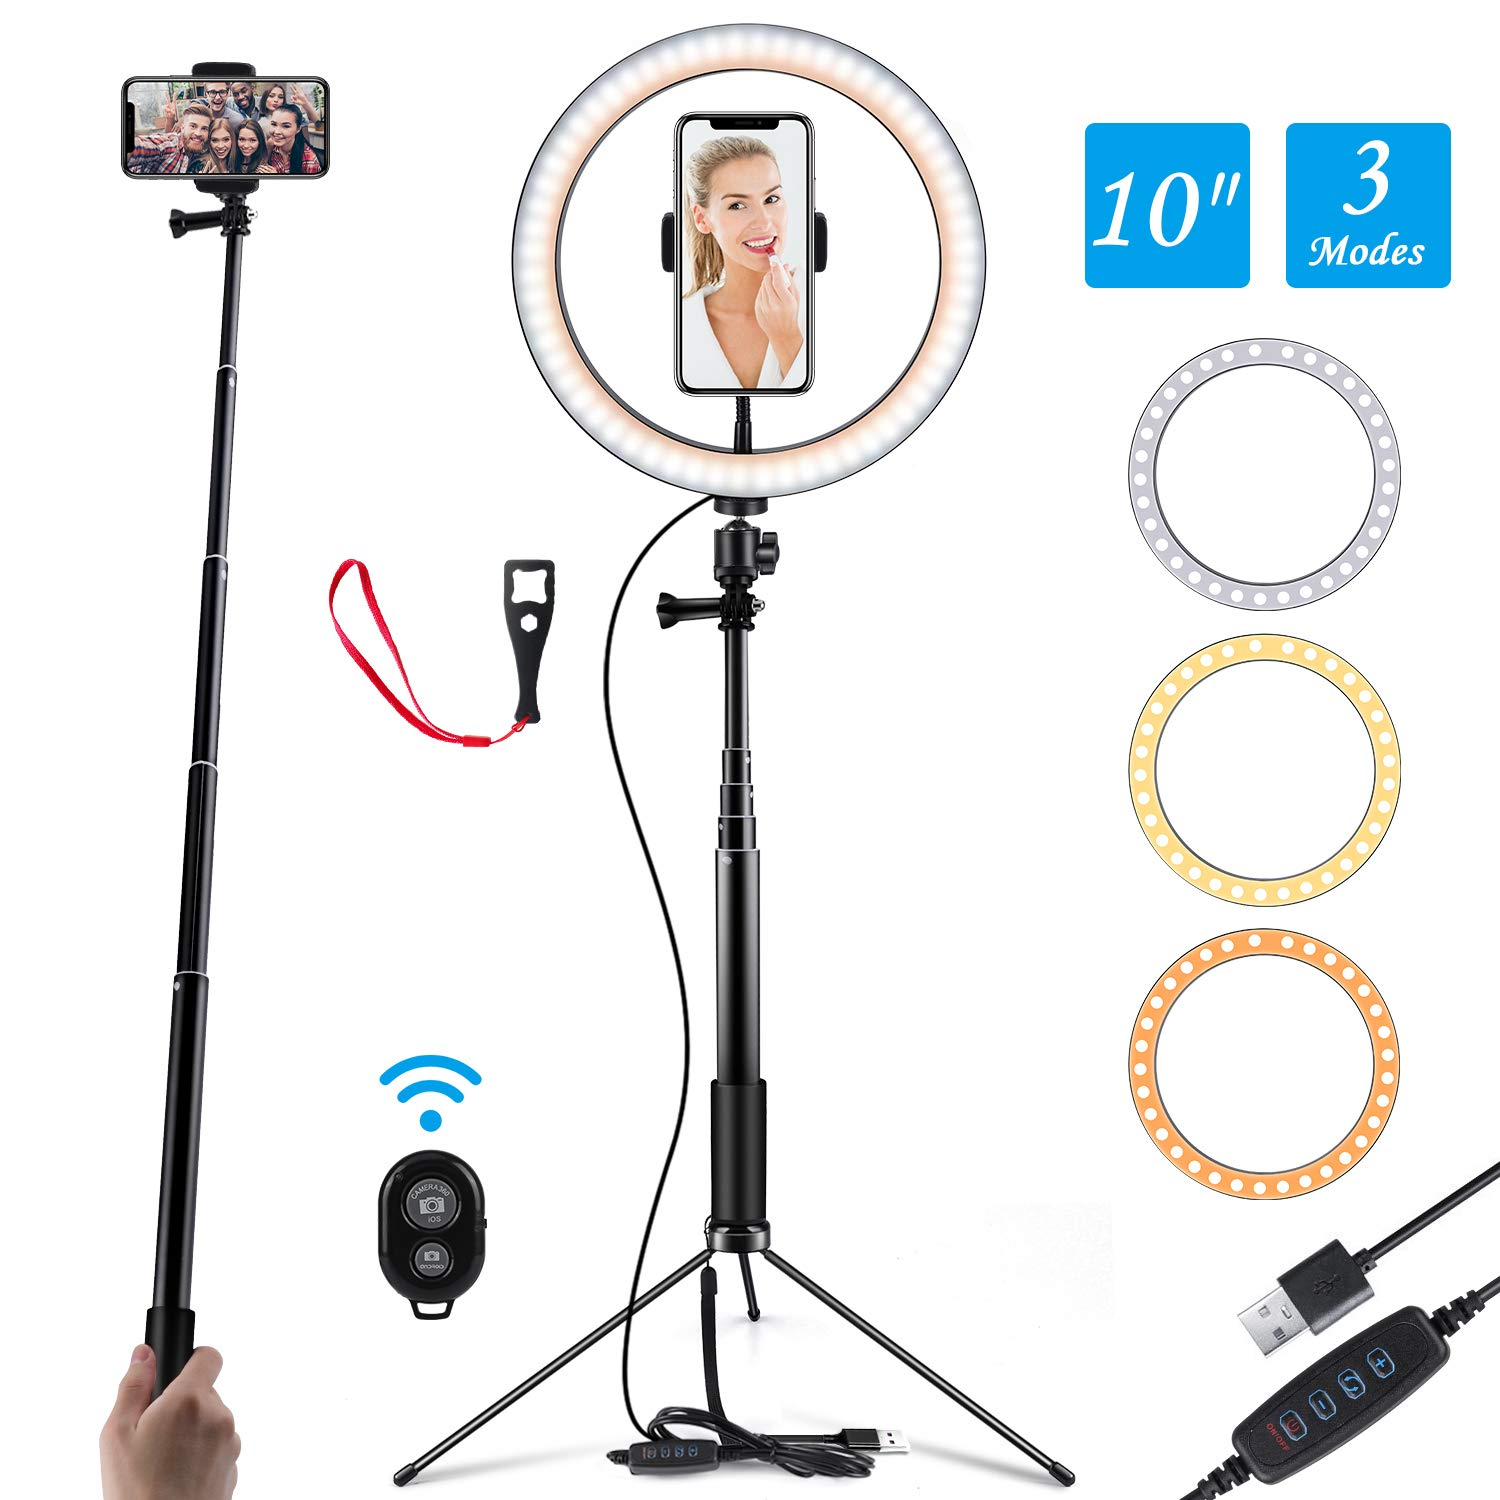 Ring Light 10'' Selfie Light Ring with Adjustable Bracket (14.56'' to 65'') Remote Control 120 Bulbs Ringlight for YouTube Video/Live Stream/Makeup/Photography (Floor Version) by KeShi